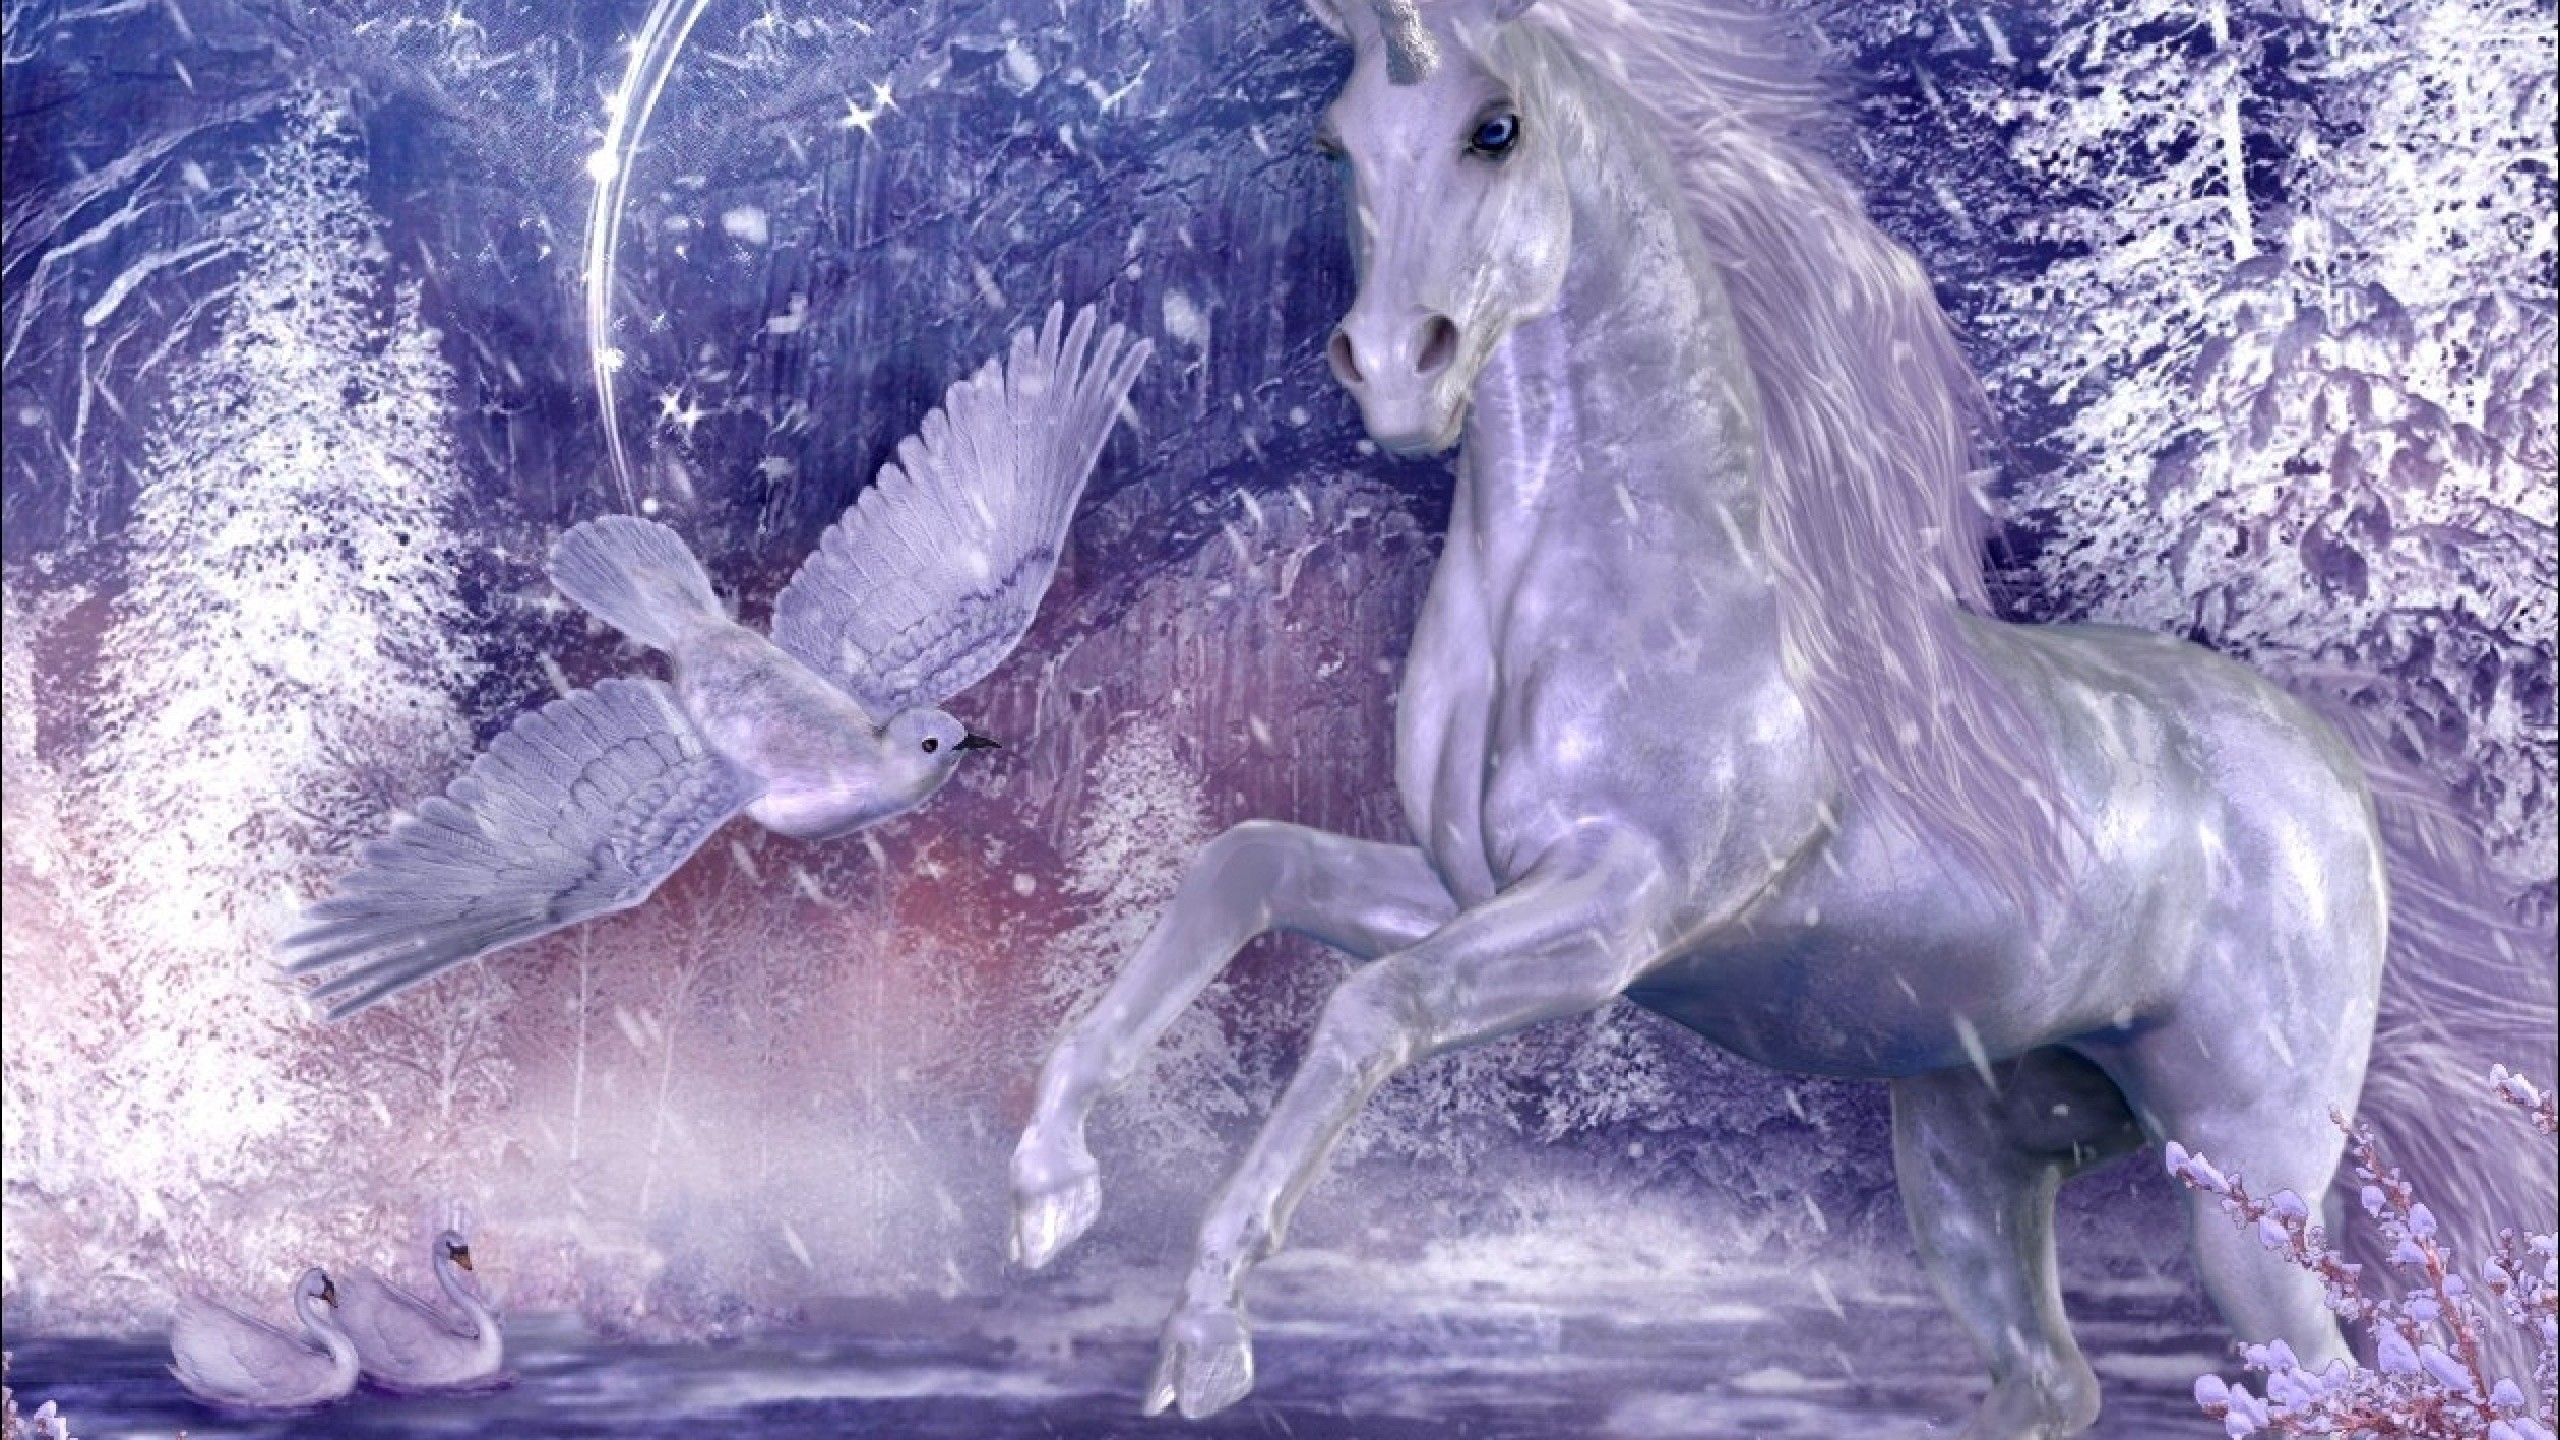 Res: 2560x1440, HD Unicorn Wallpaper and Desktop Background Back Wallpapers